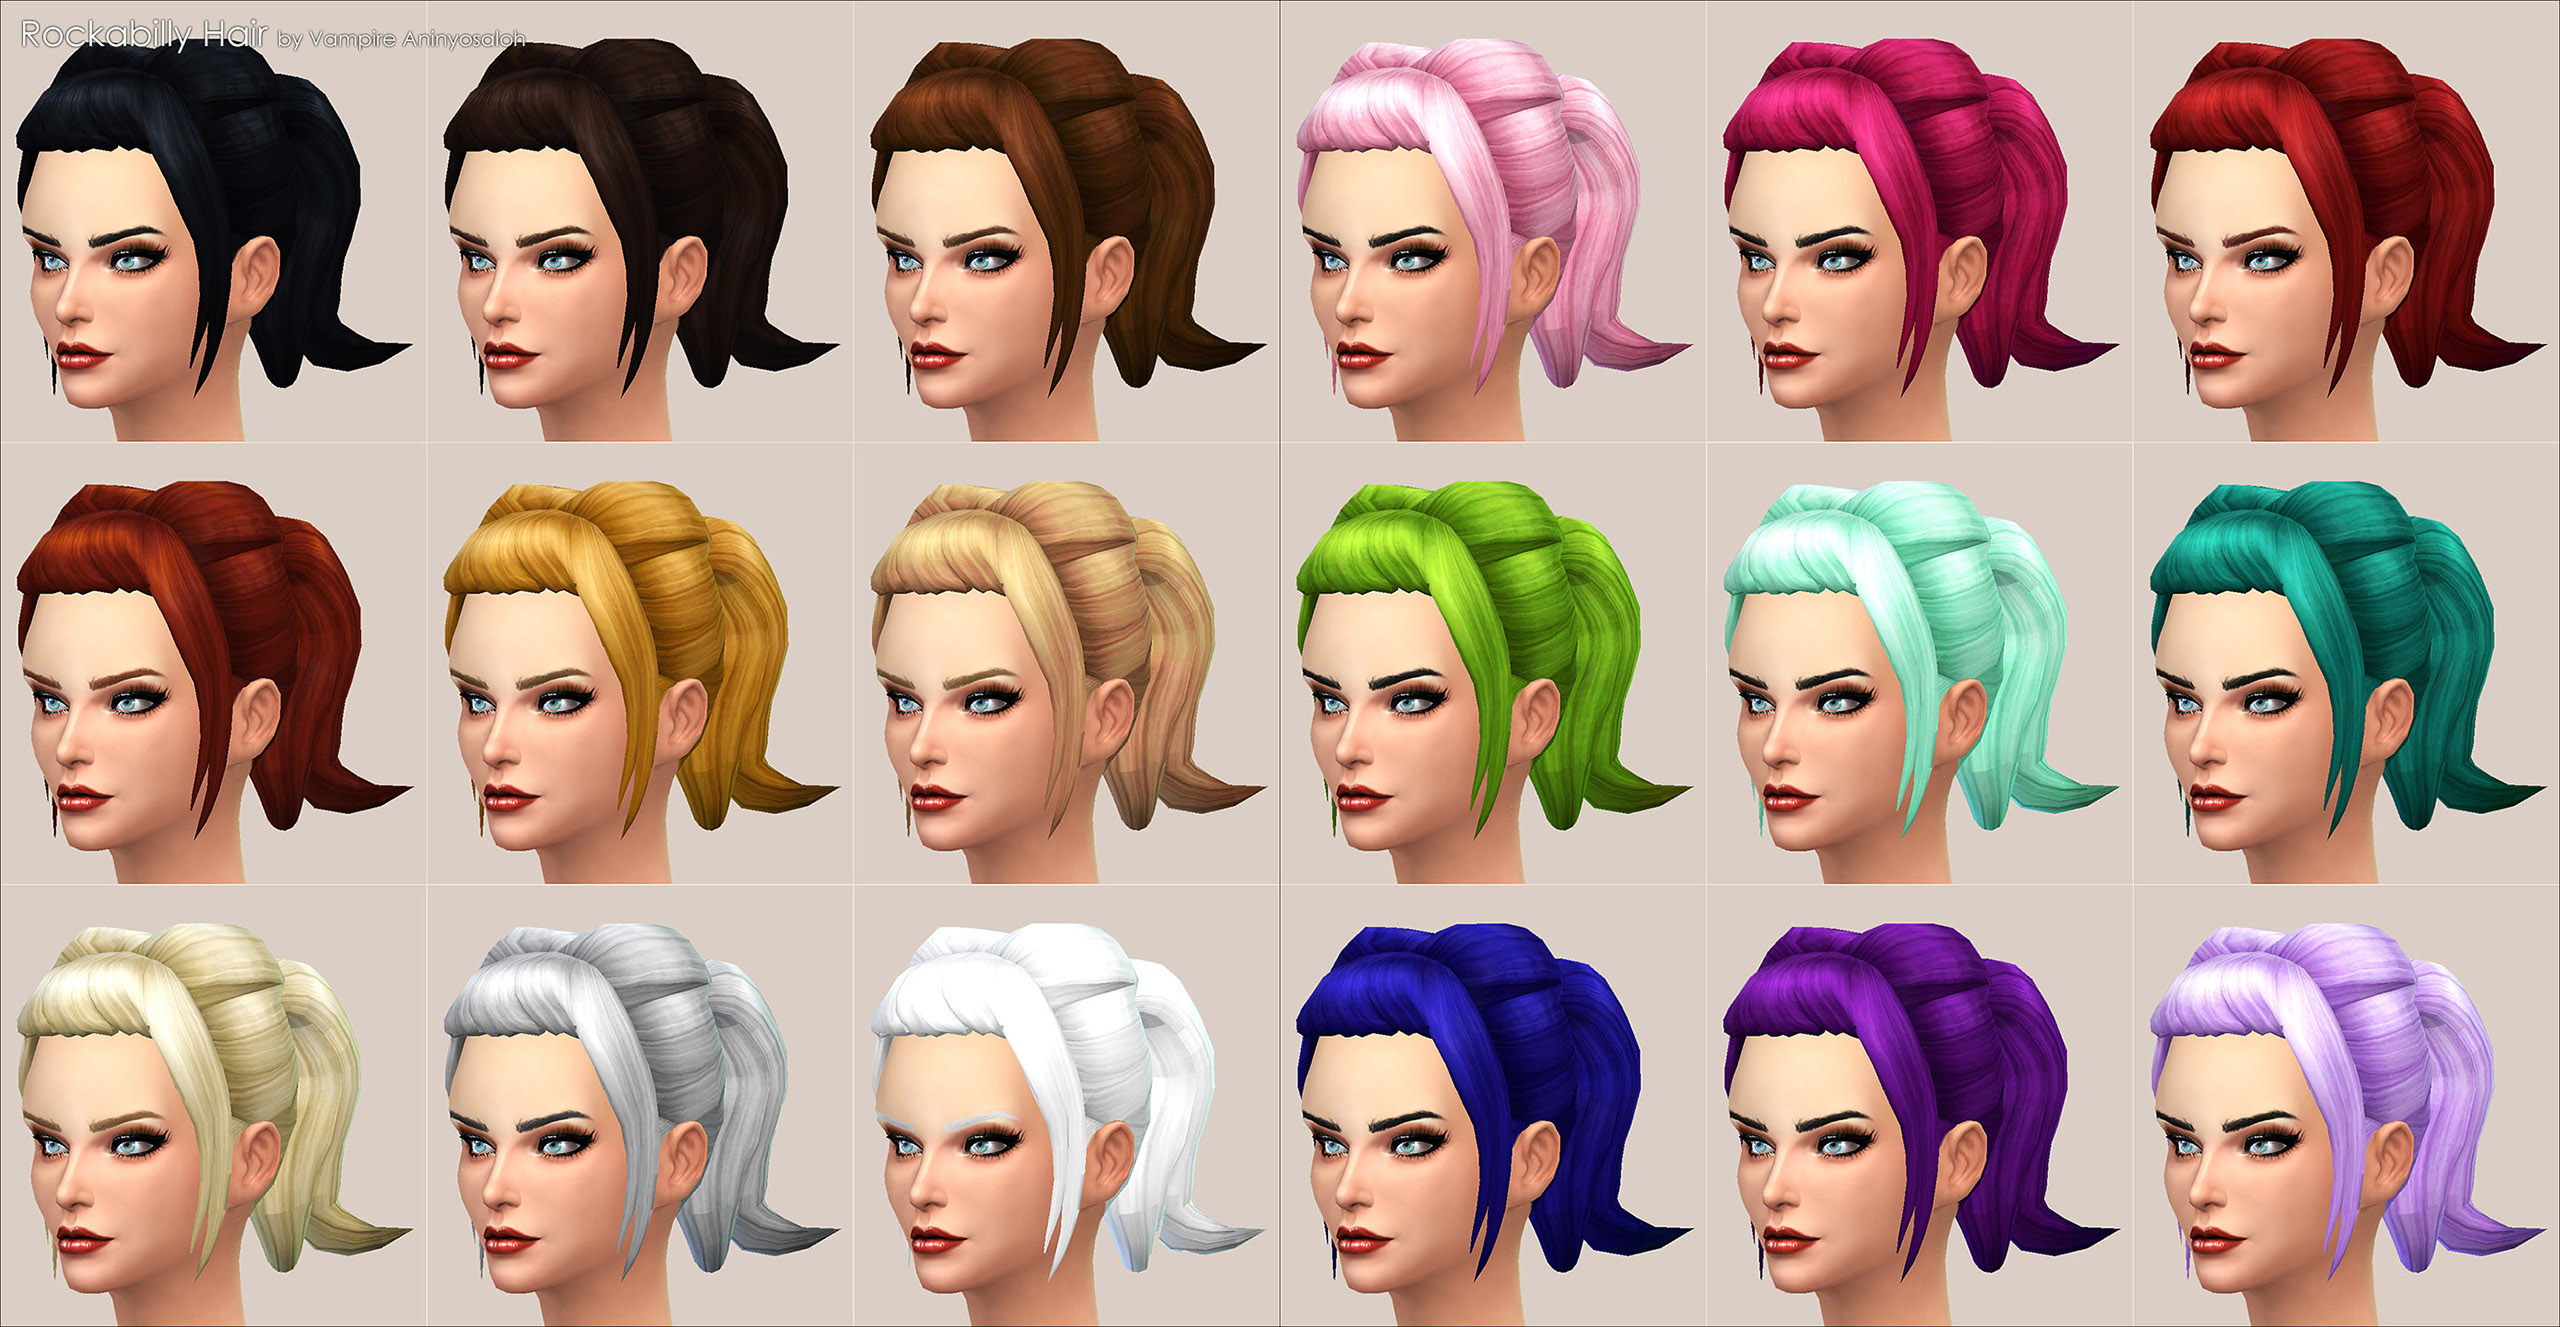 It s for female sims from teen to elder it s not a replacement  It comes  with a custom thumbnail to find it more easily. Mod The Sims   Rockabilly Hair  NEW MESH